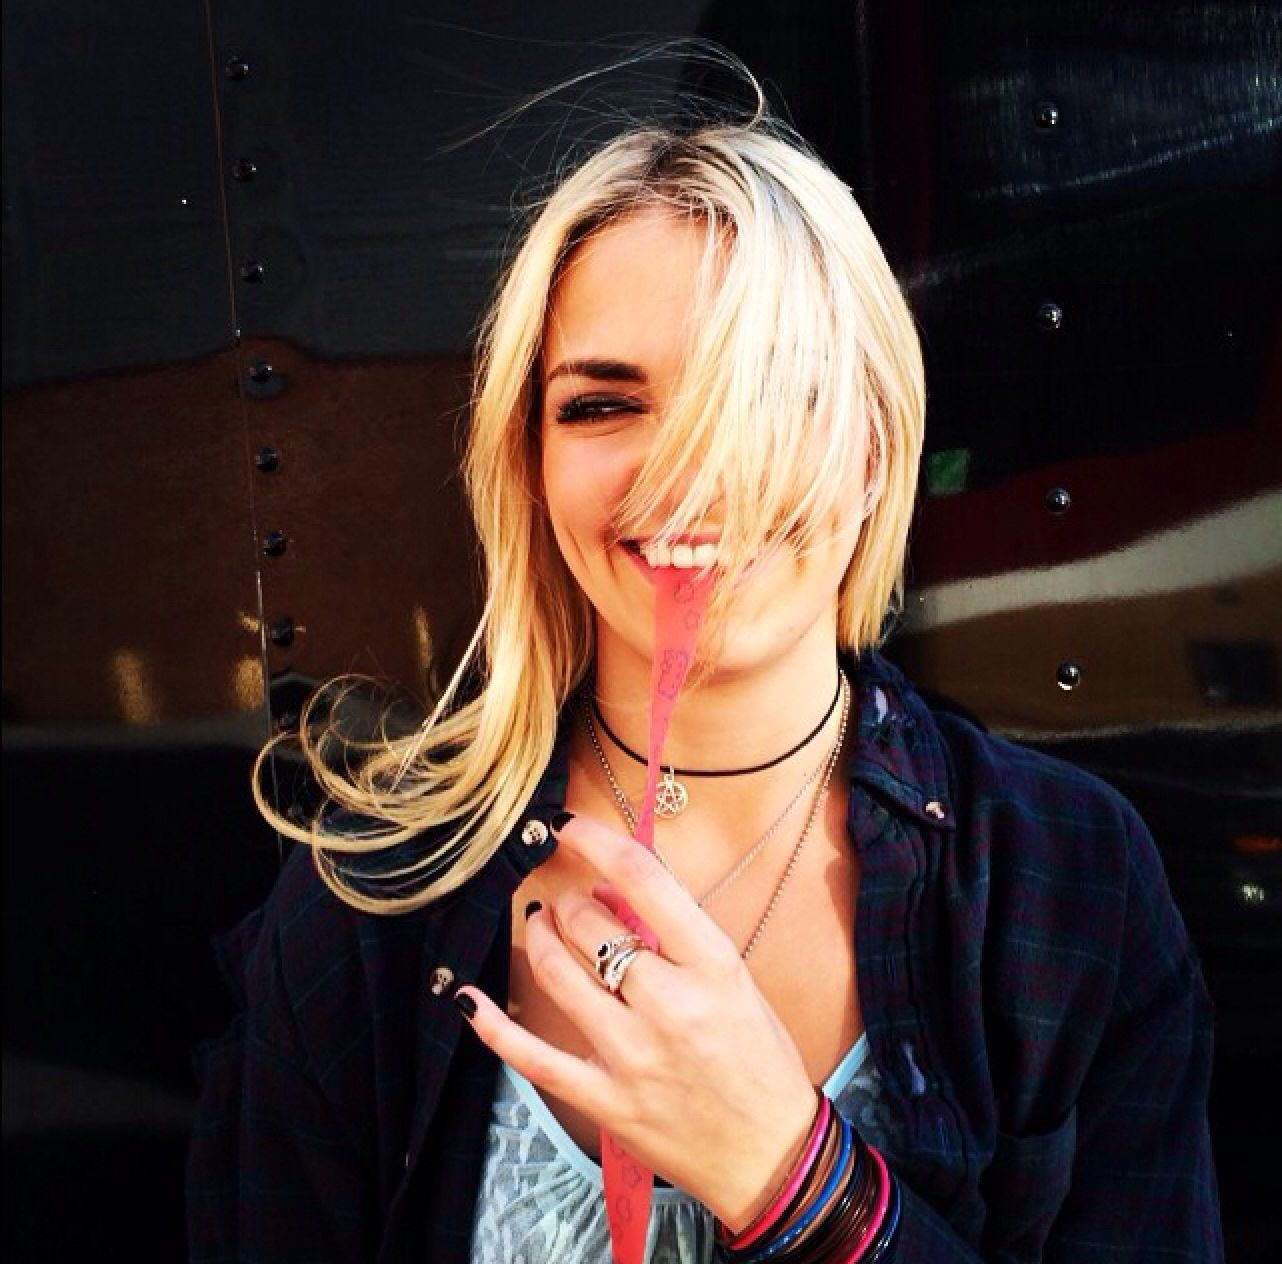 Rydel outfit goals